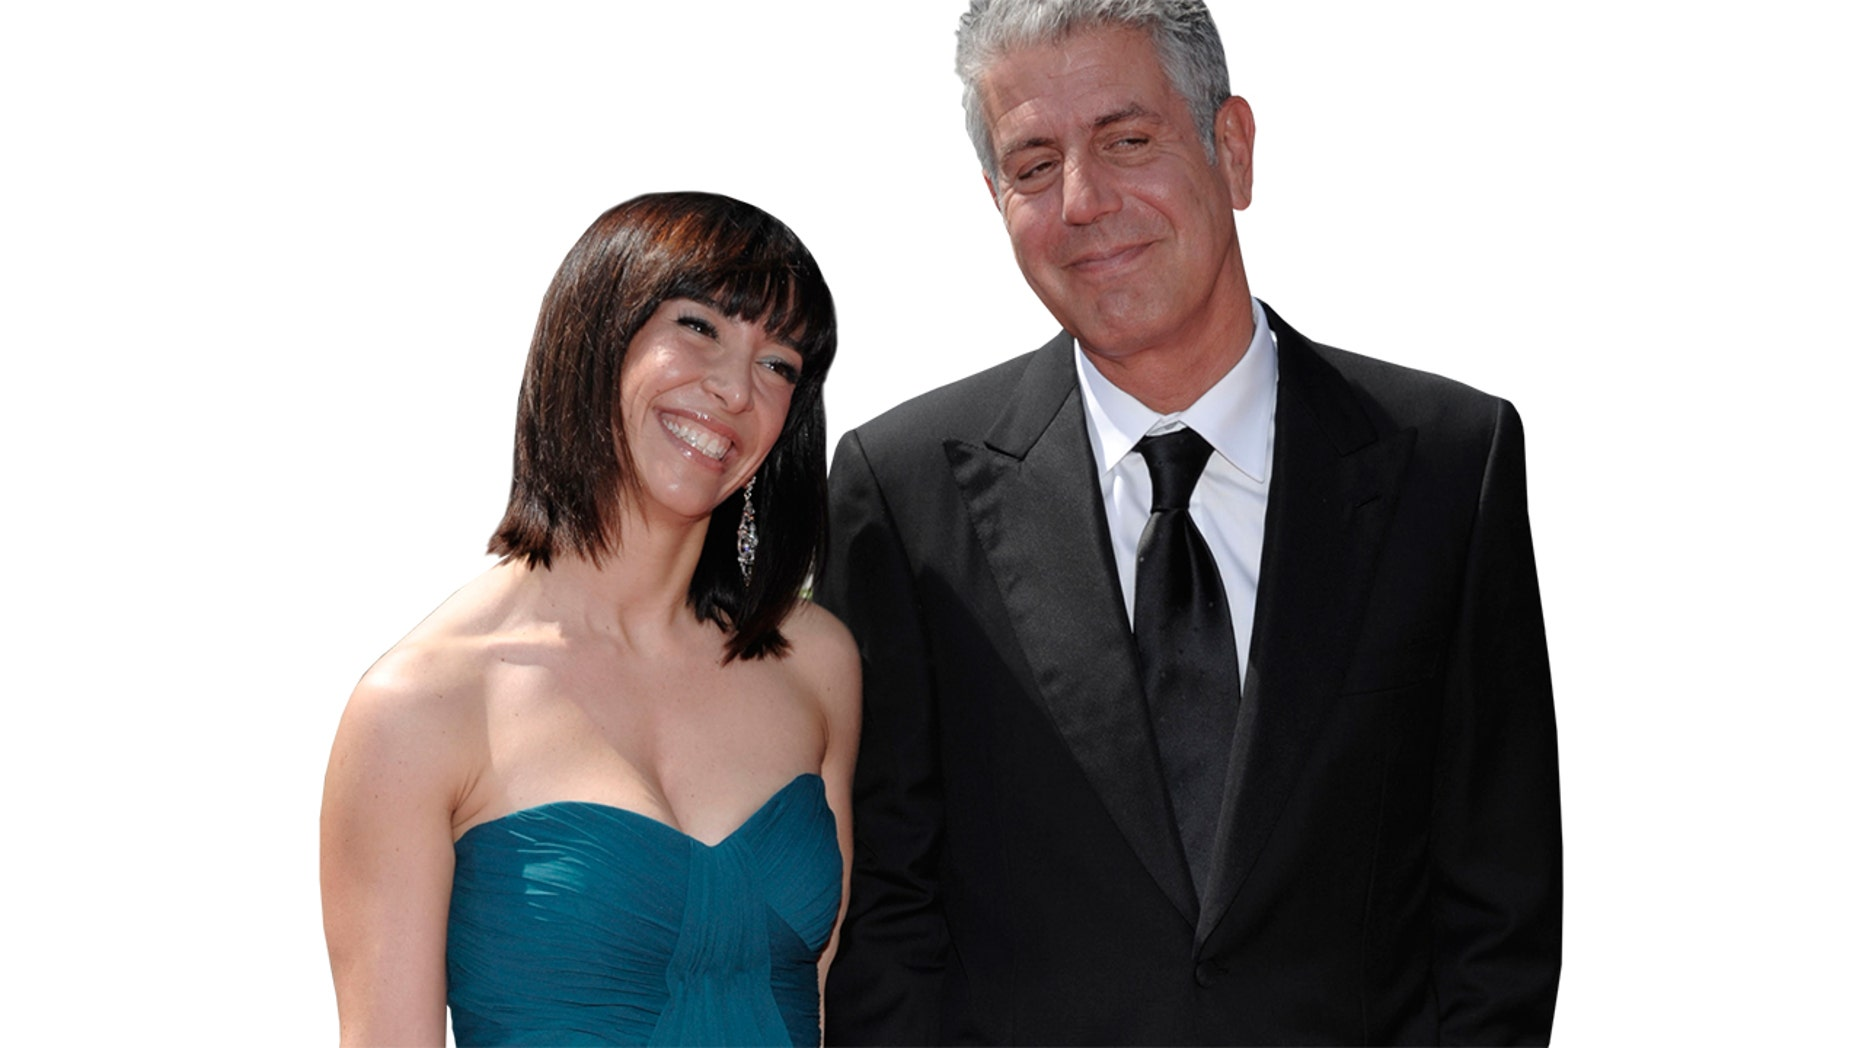 pictures-of-anthony-bourdain-wife-best-naked-porn-girl